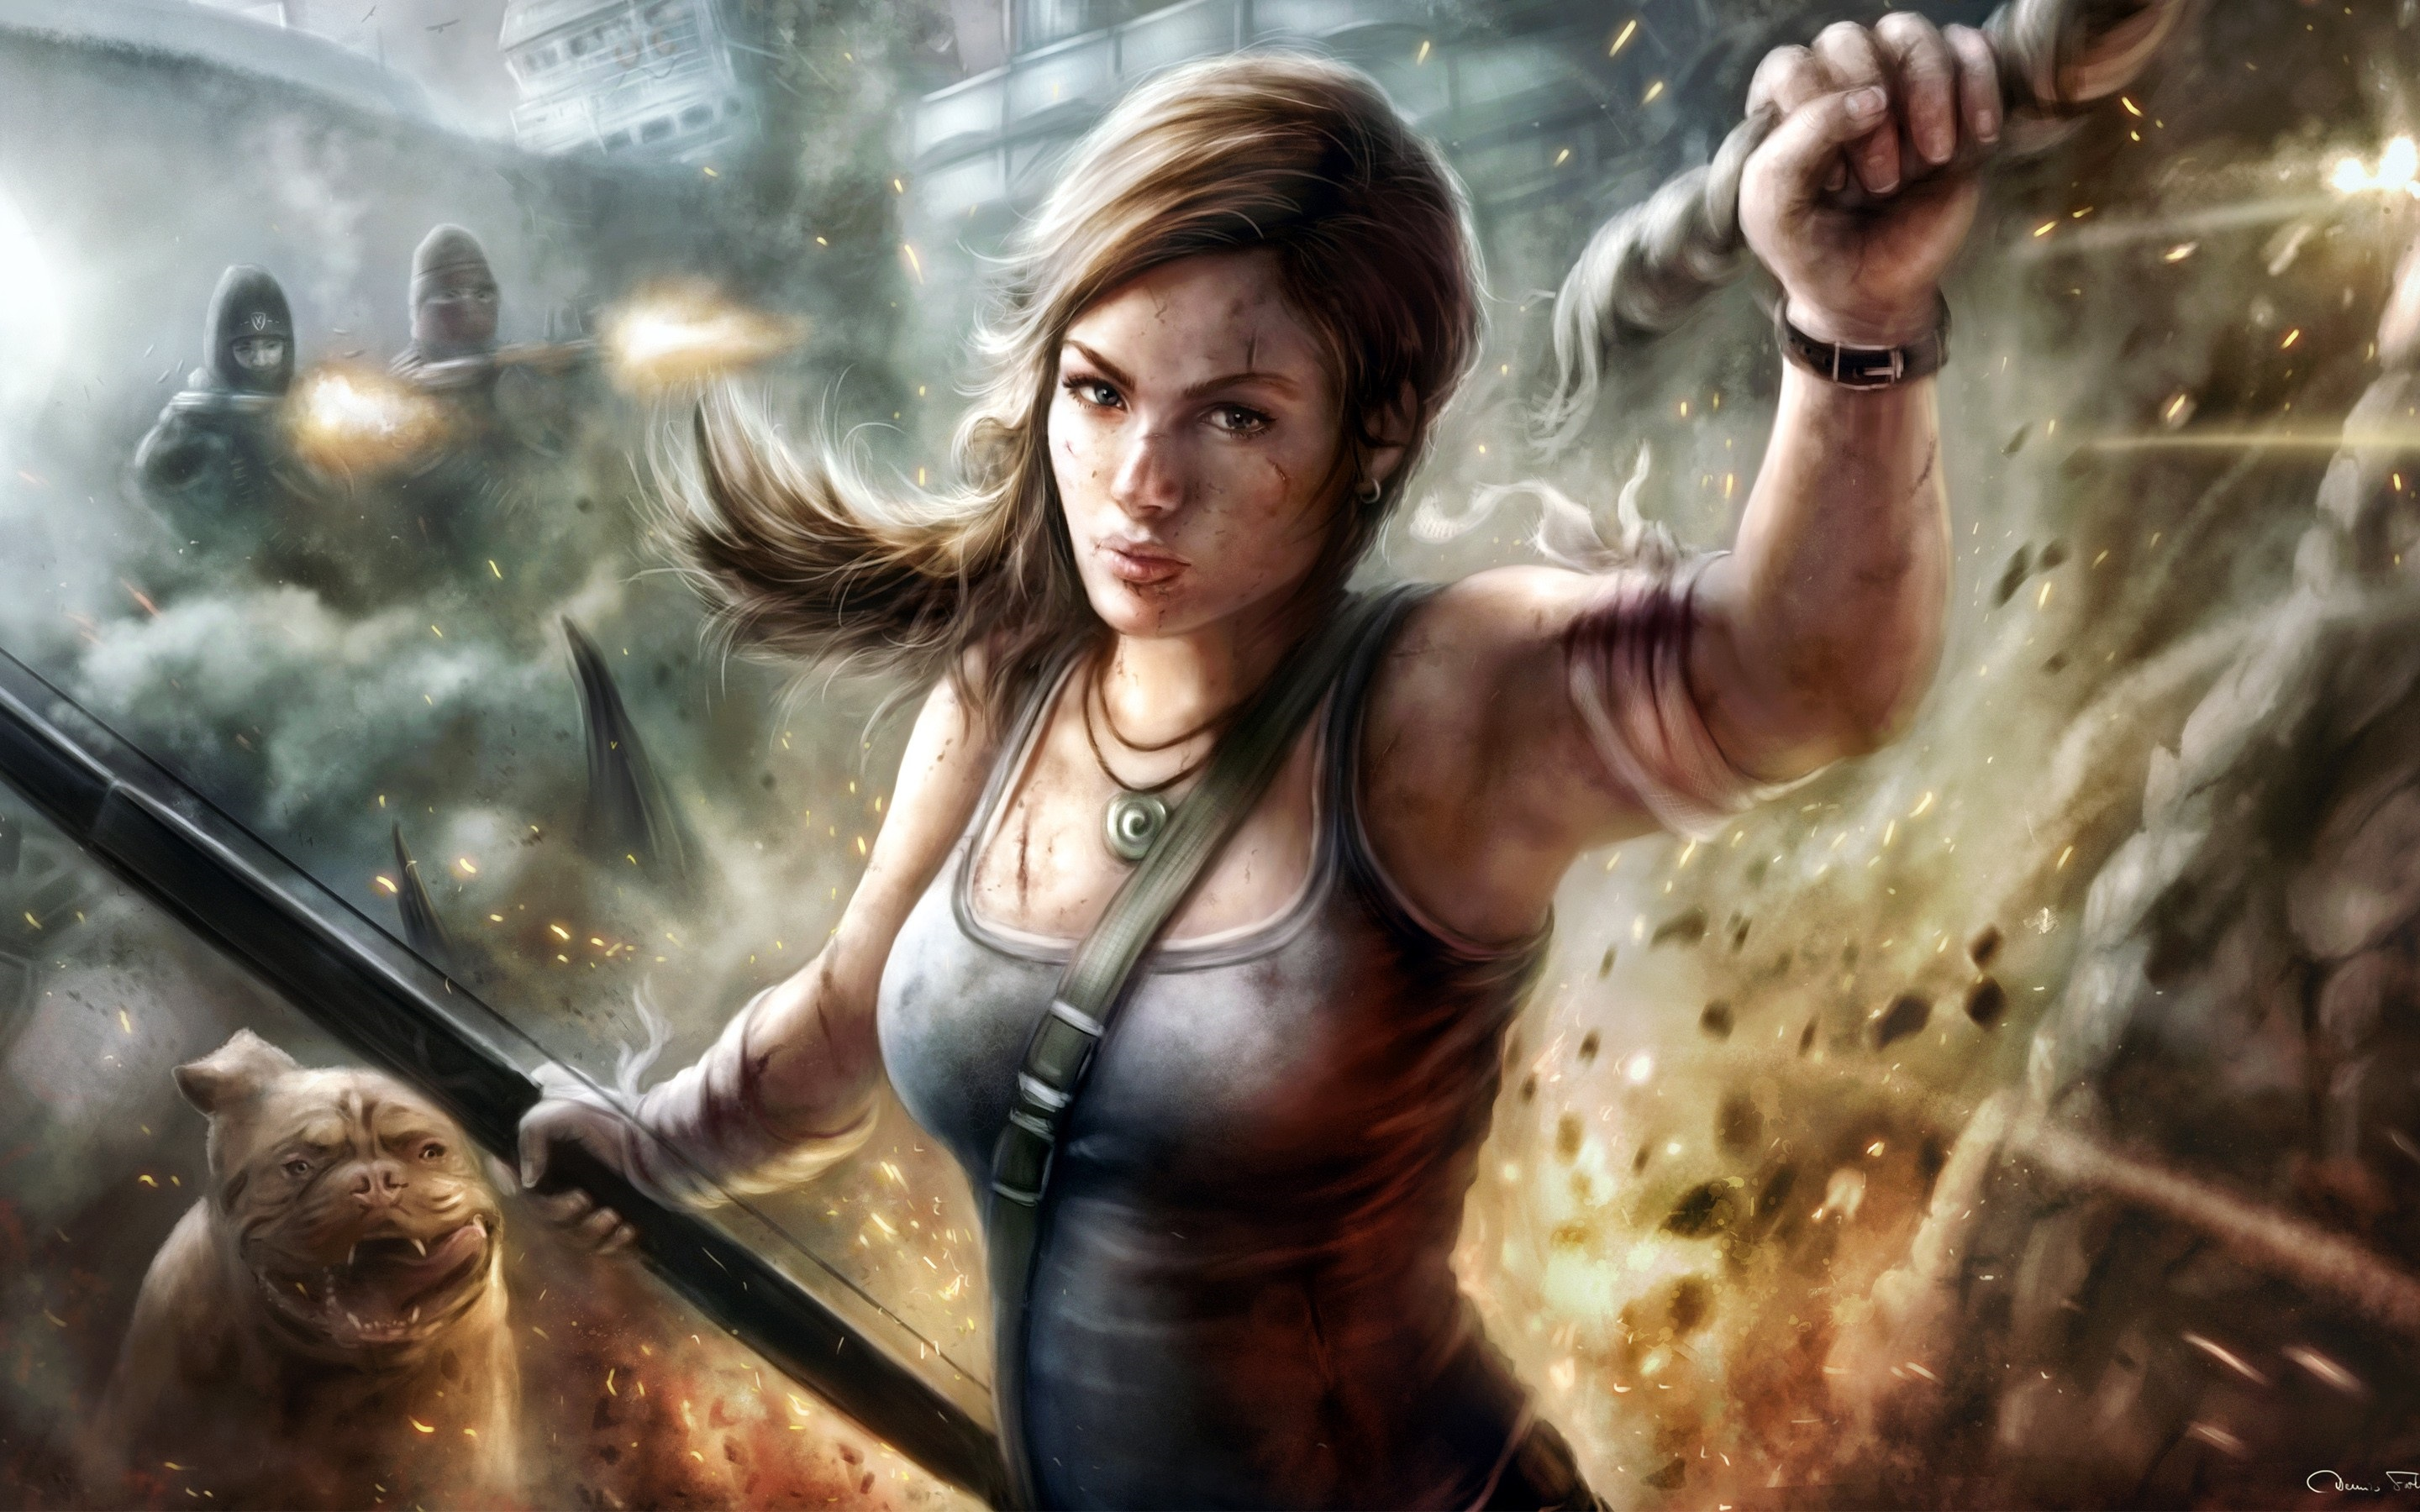 Wallpaper Lara Croft Tomb Raider Video Game 2880x1800 Hd Picture